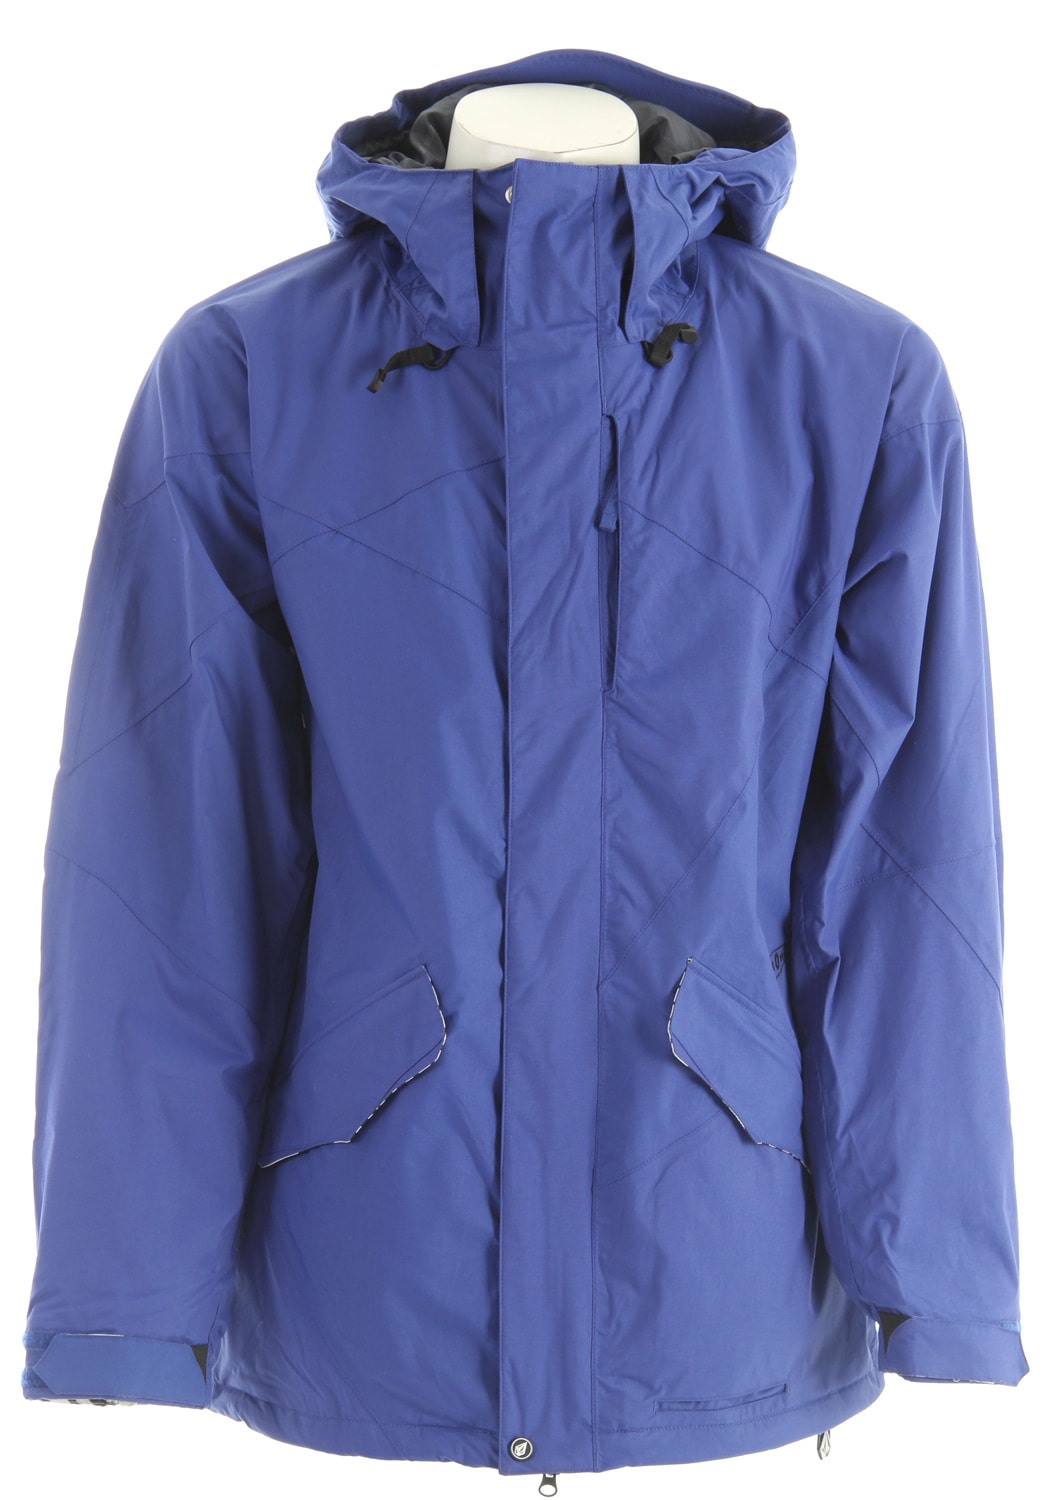 Shop for Volcom Shaper Snowboard Jacket Strobe Blue - Men's